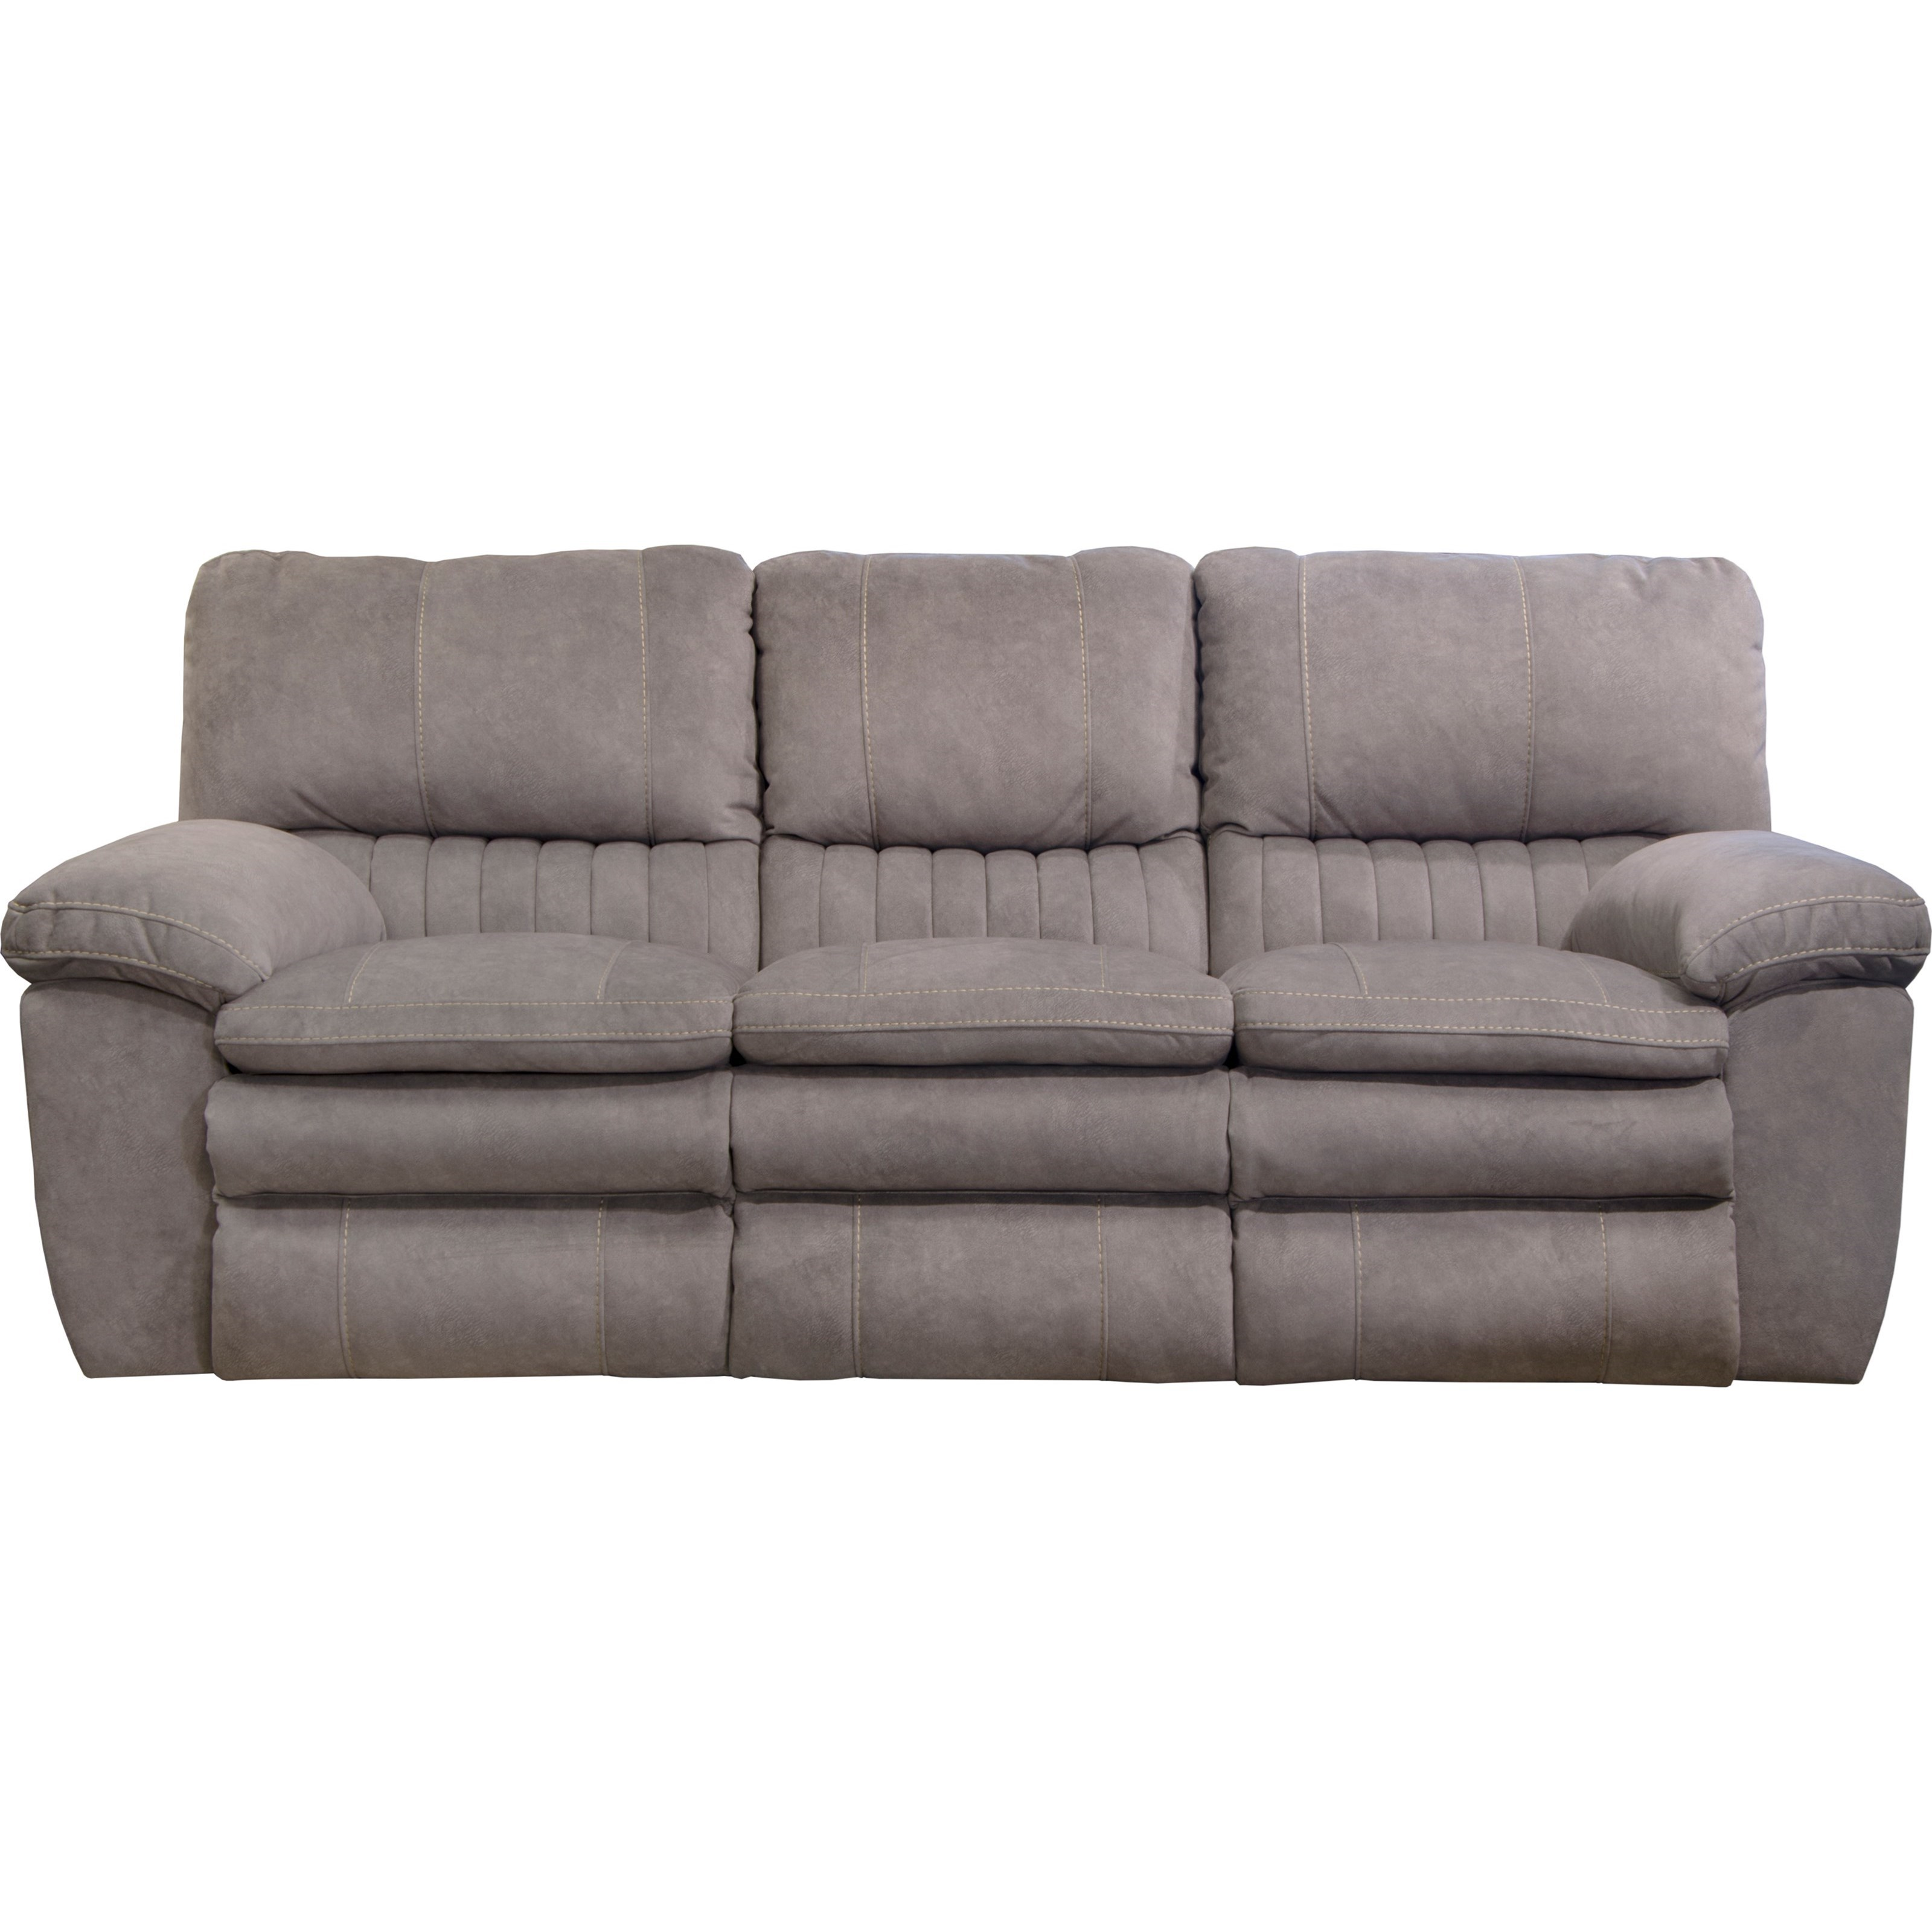 Reyes Power Lay Flat Reclining Sofa by Catnapper at Northeast Factory Direct